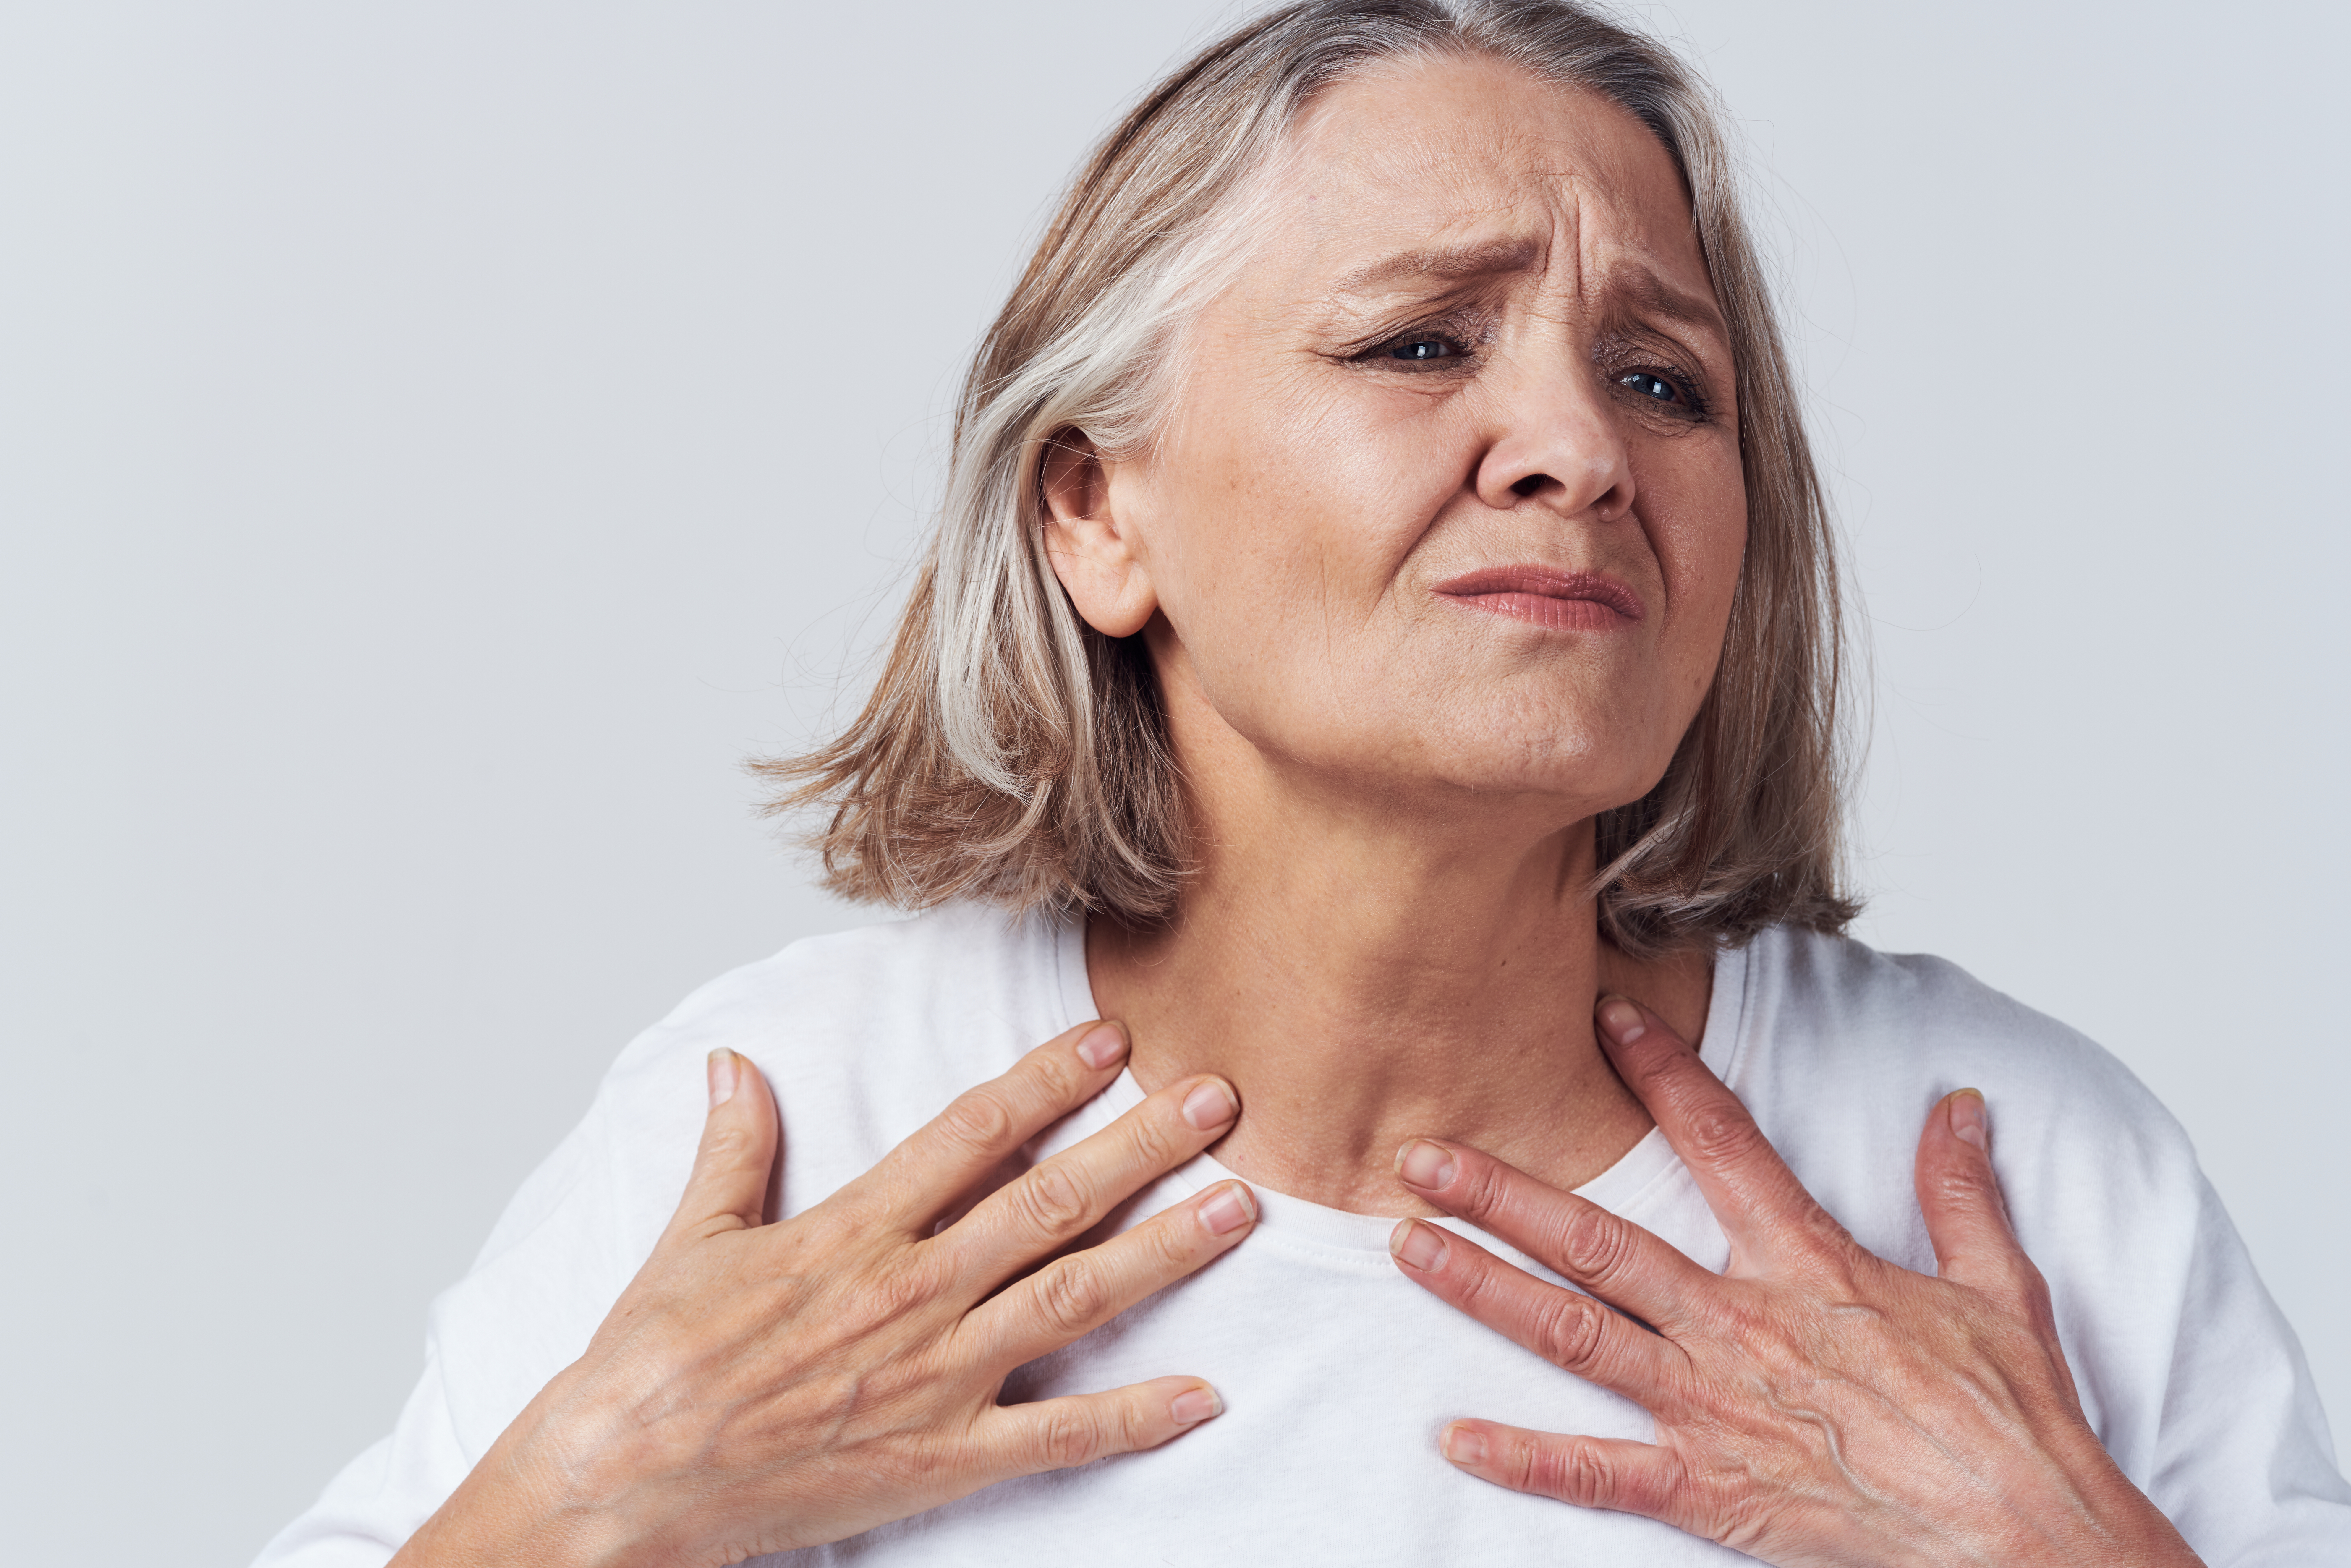 Chest Pain, Swallowing Hurts: Heart Attack or Esophagus Spasm?